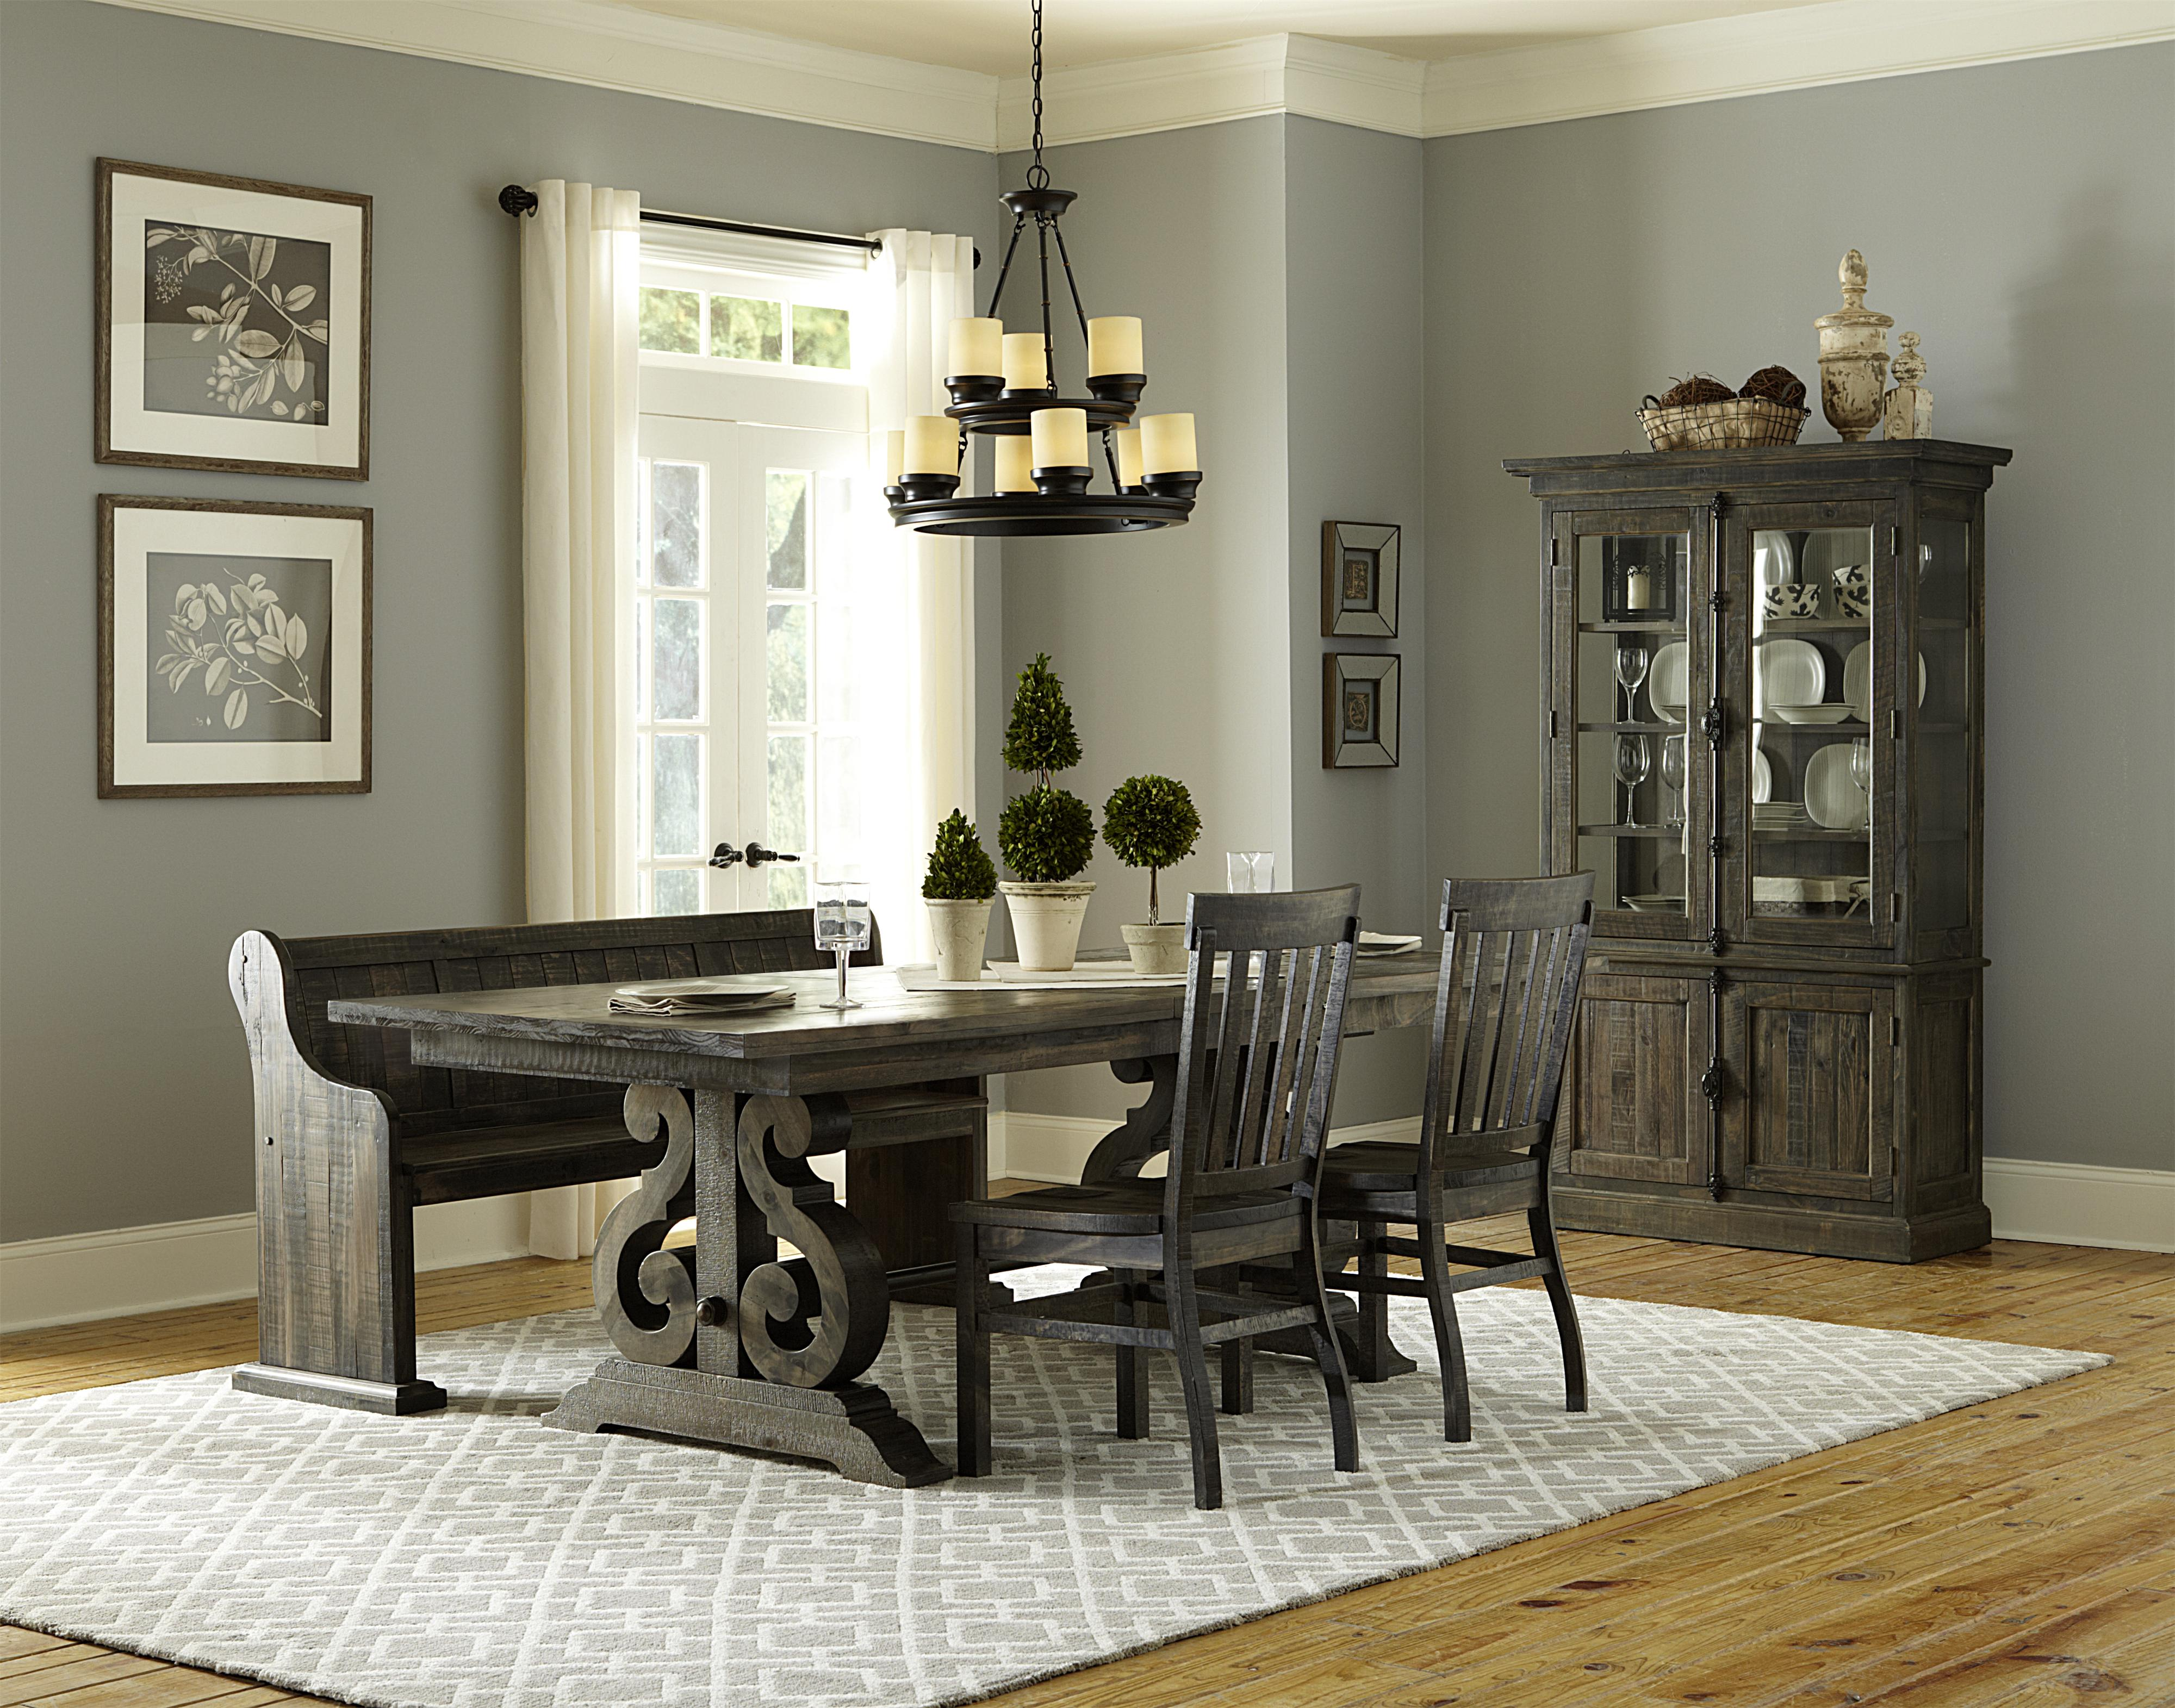 Magnussen Home Bellamy Formal Dining Room Group - Item Number: D2491 Formal Dining Room Group 2